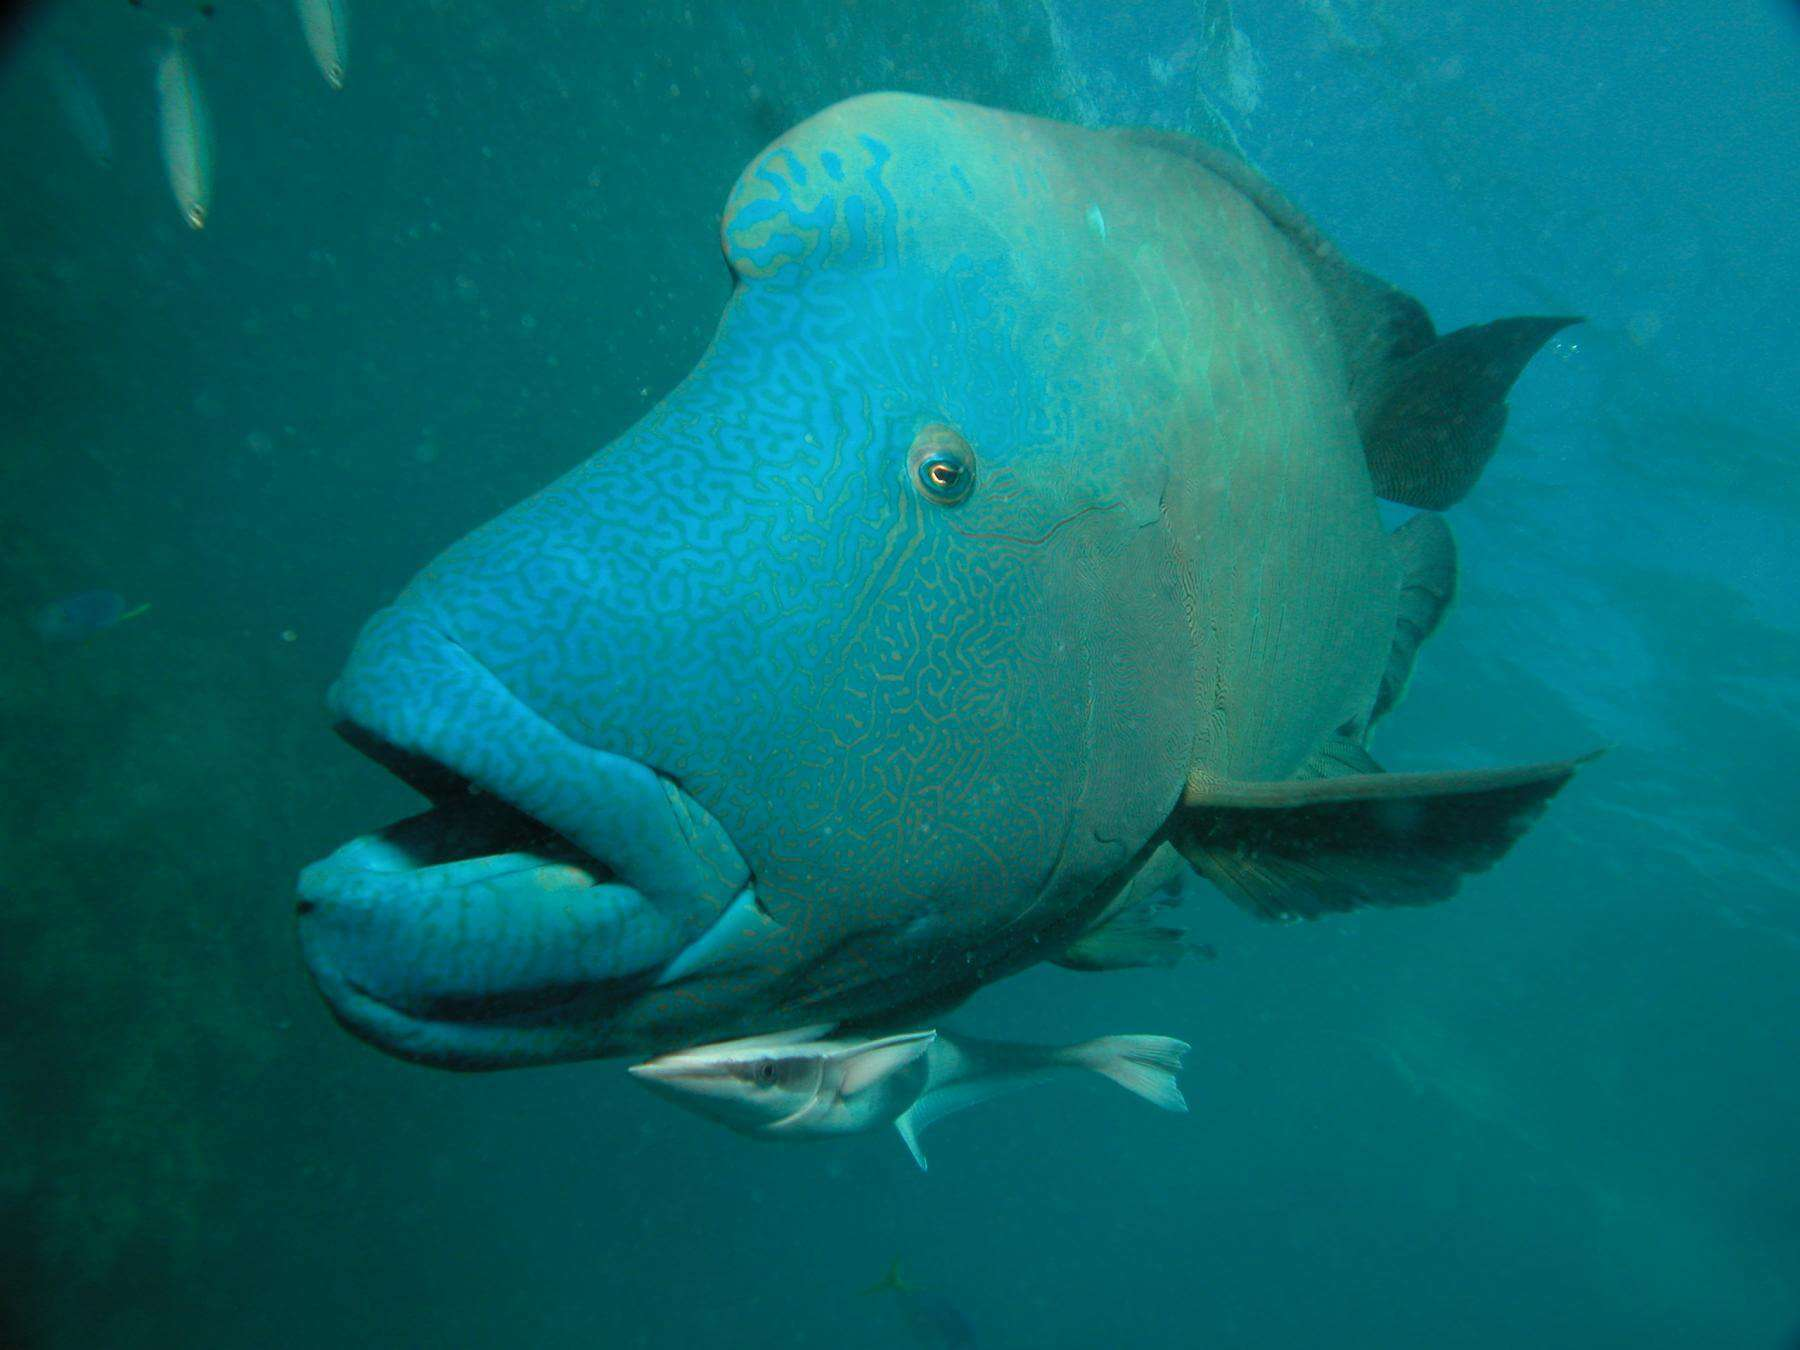 Beautiful Napoleon Wrasse / Maori wrasse fish